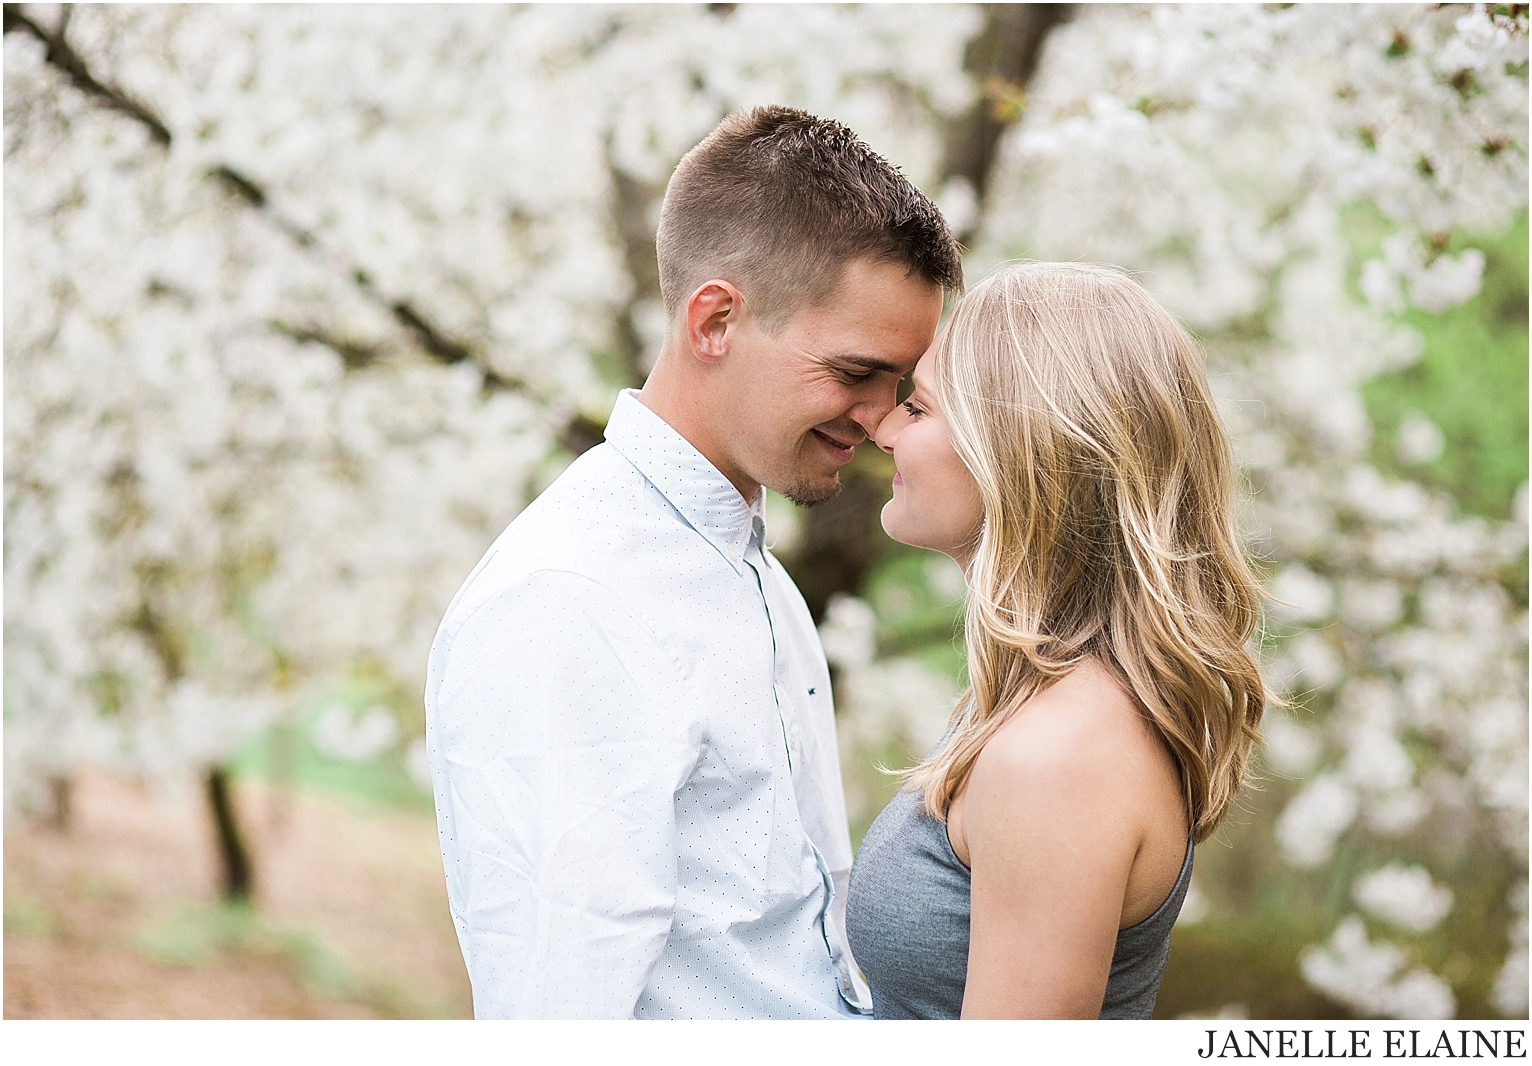 tricia and nate engagement photos-janelle elaine photography-109.jpg